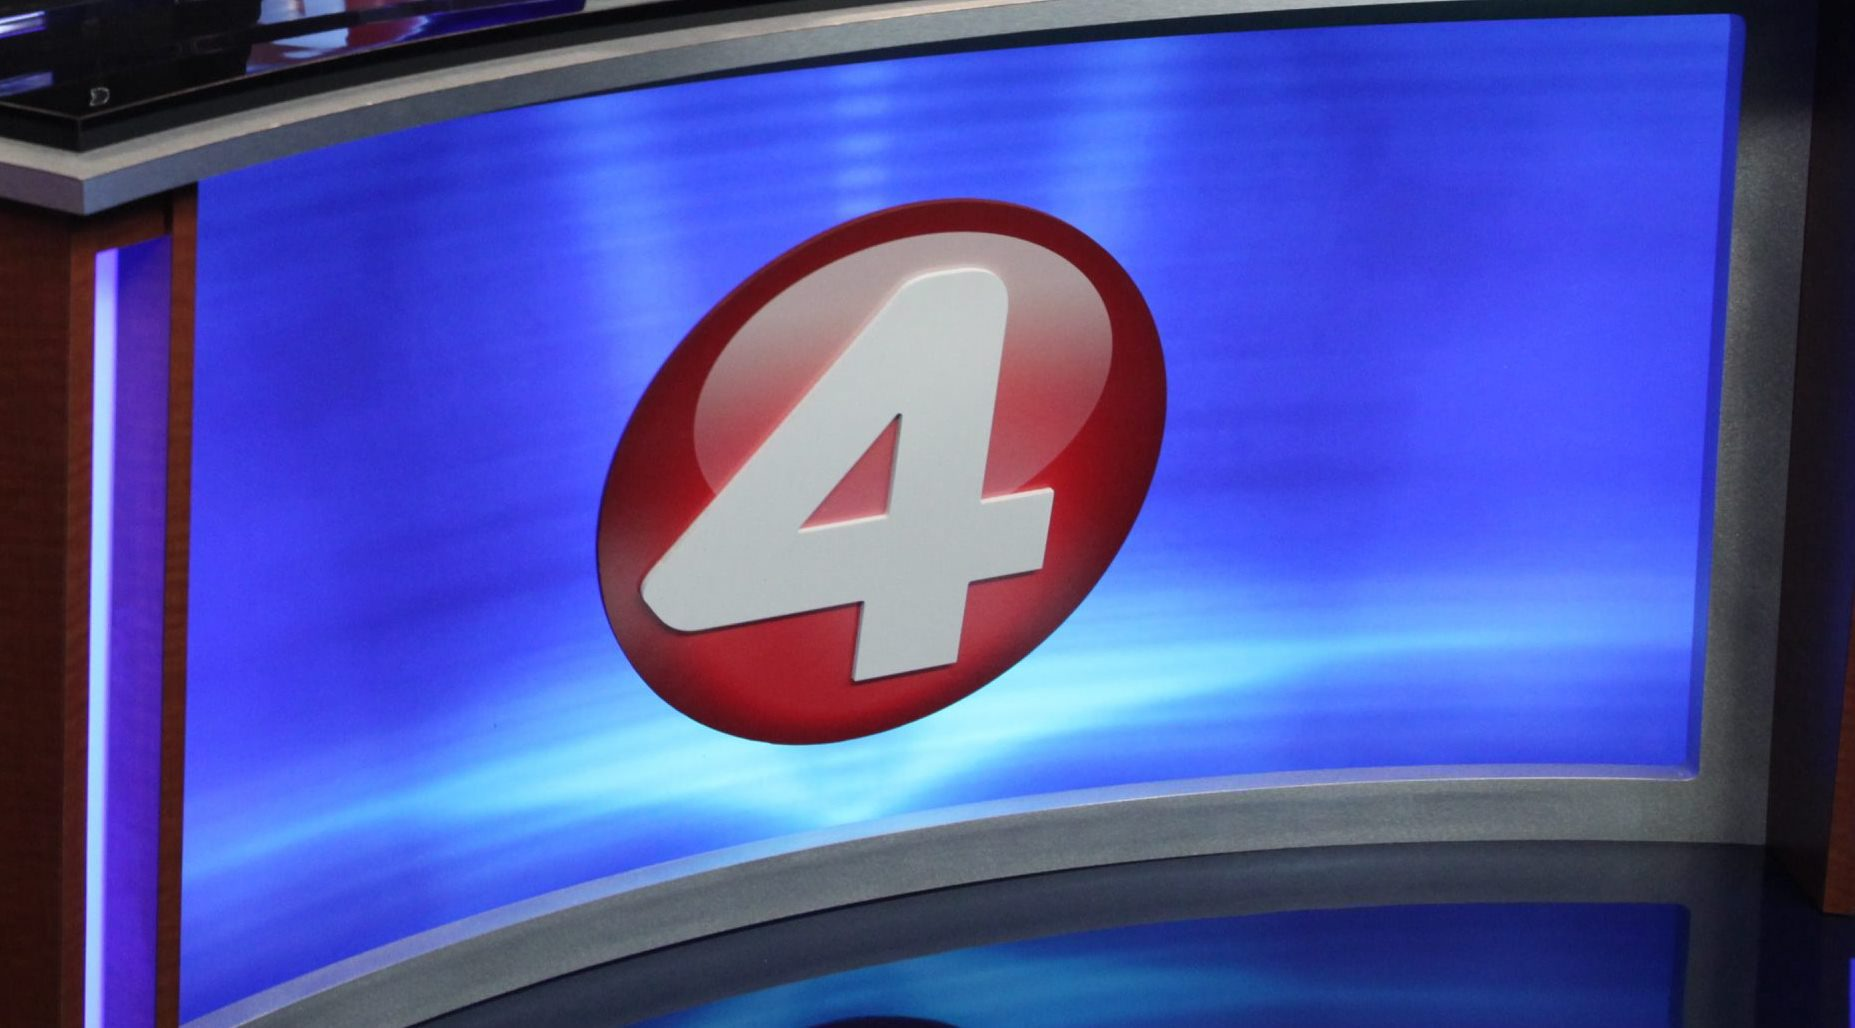 WIVB will begin airing a local newscast at 6:30 p.m. on sister station WNLO. (News file photo)